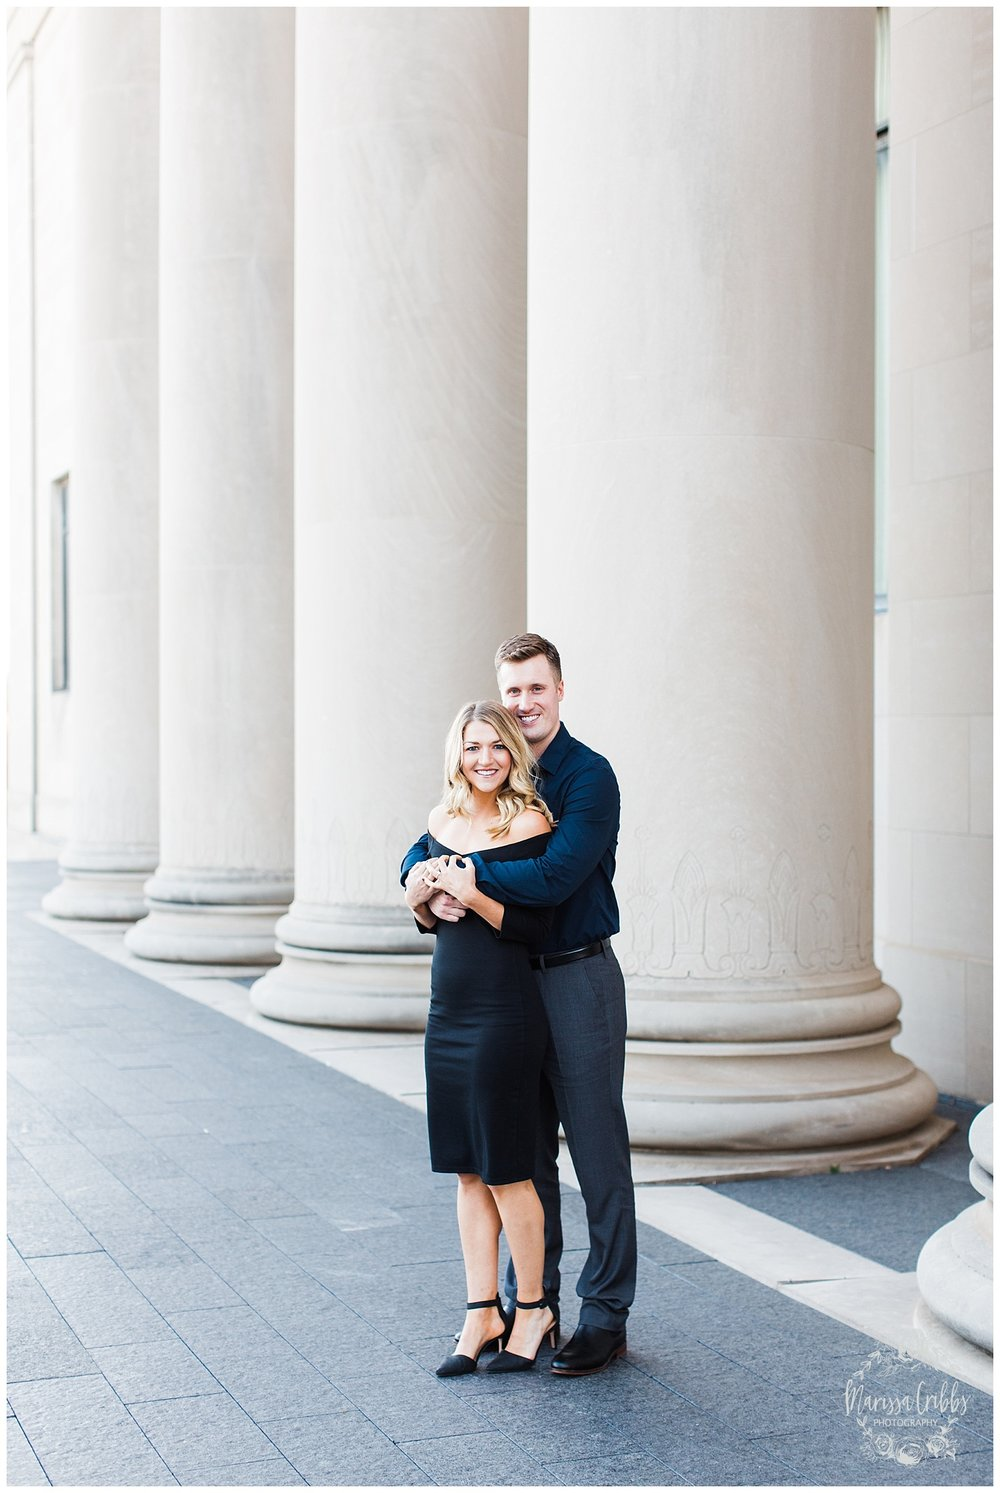 KATE & NATE ENGAGEMENT | NELSON ATKINS | MARISSA CRIBBS PHOTOGRAPHY_3565.jpg